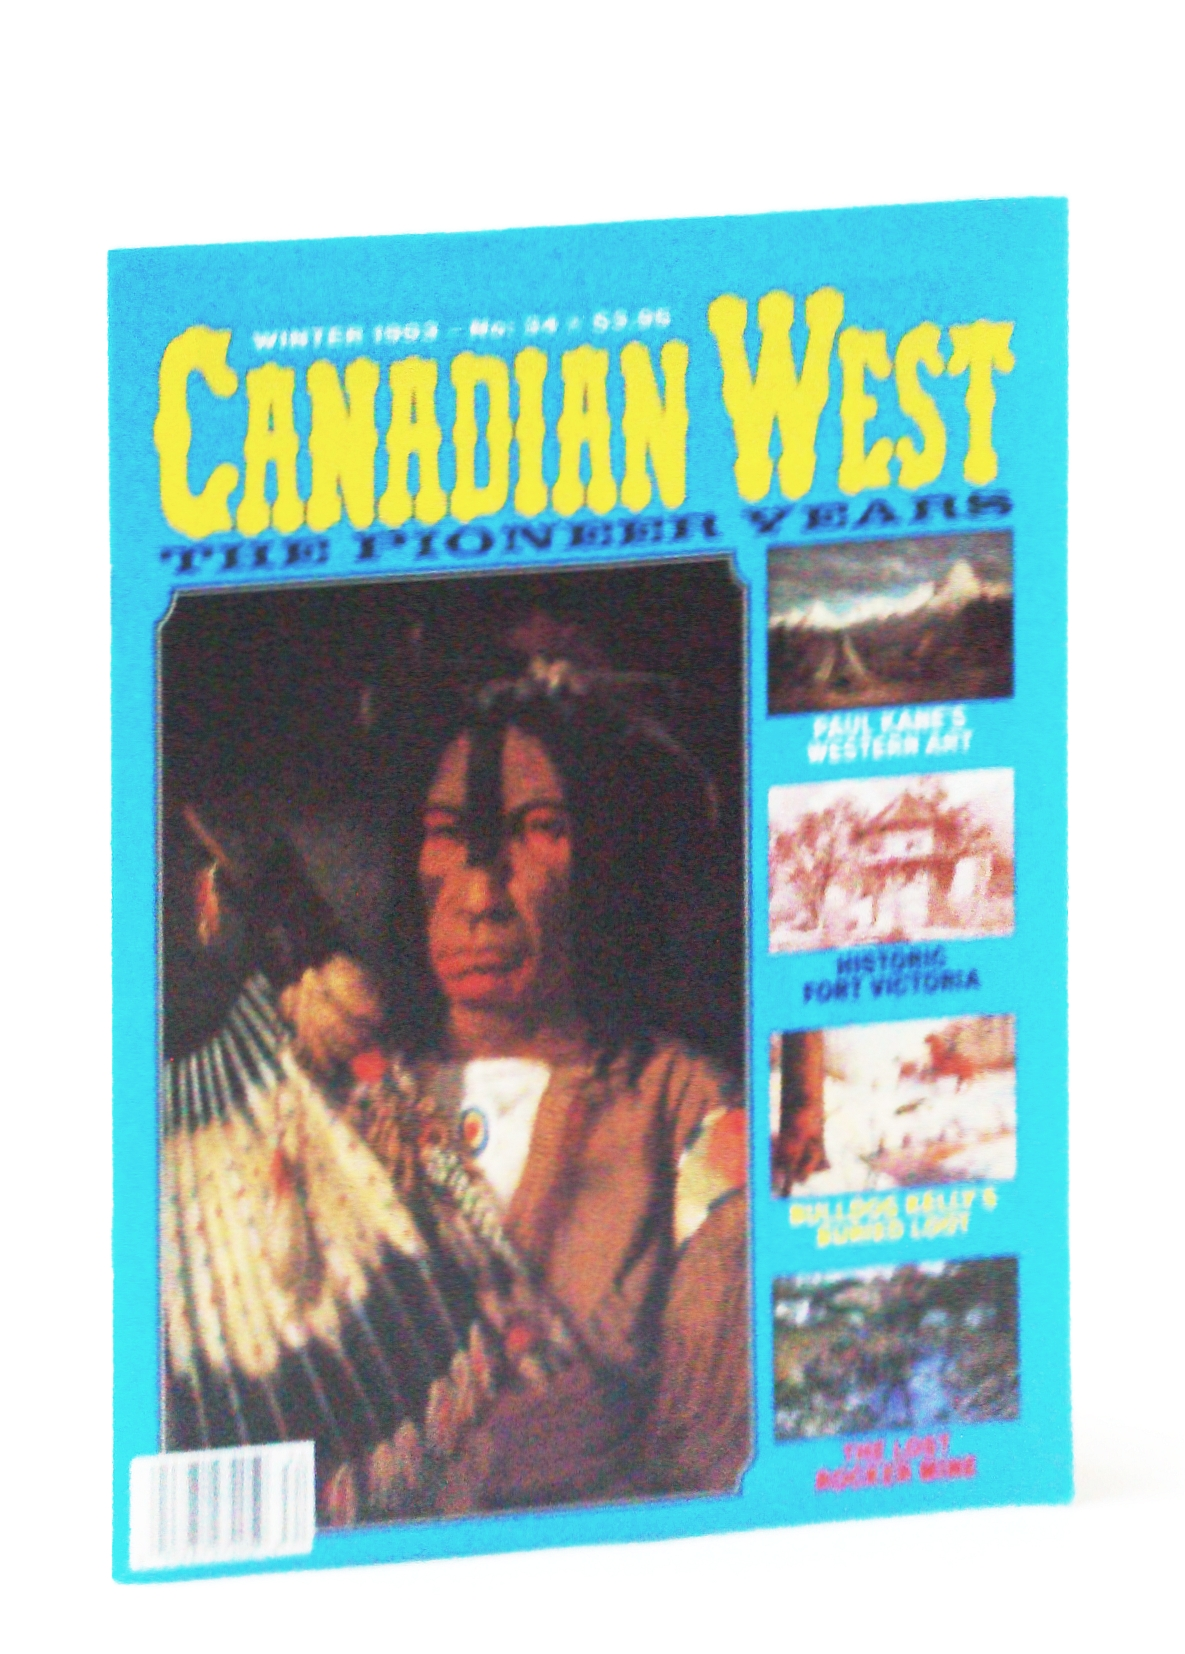 Image for Canadian West Magazine - The Pioneer Years: Winter 1993,  Vol. 9, No. 4 (Collector's #34)